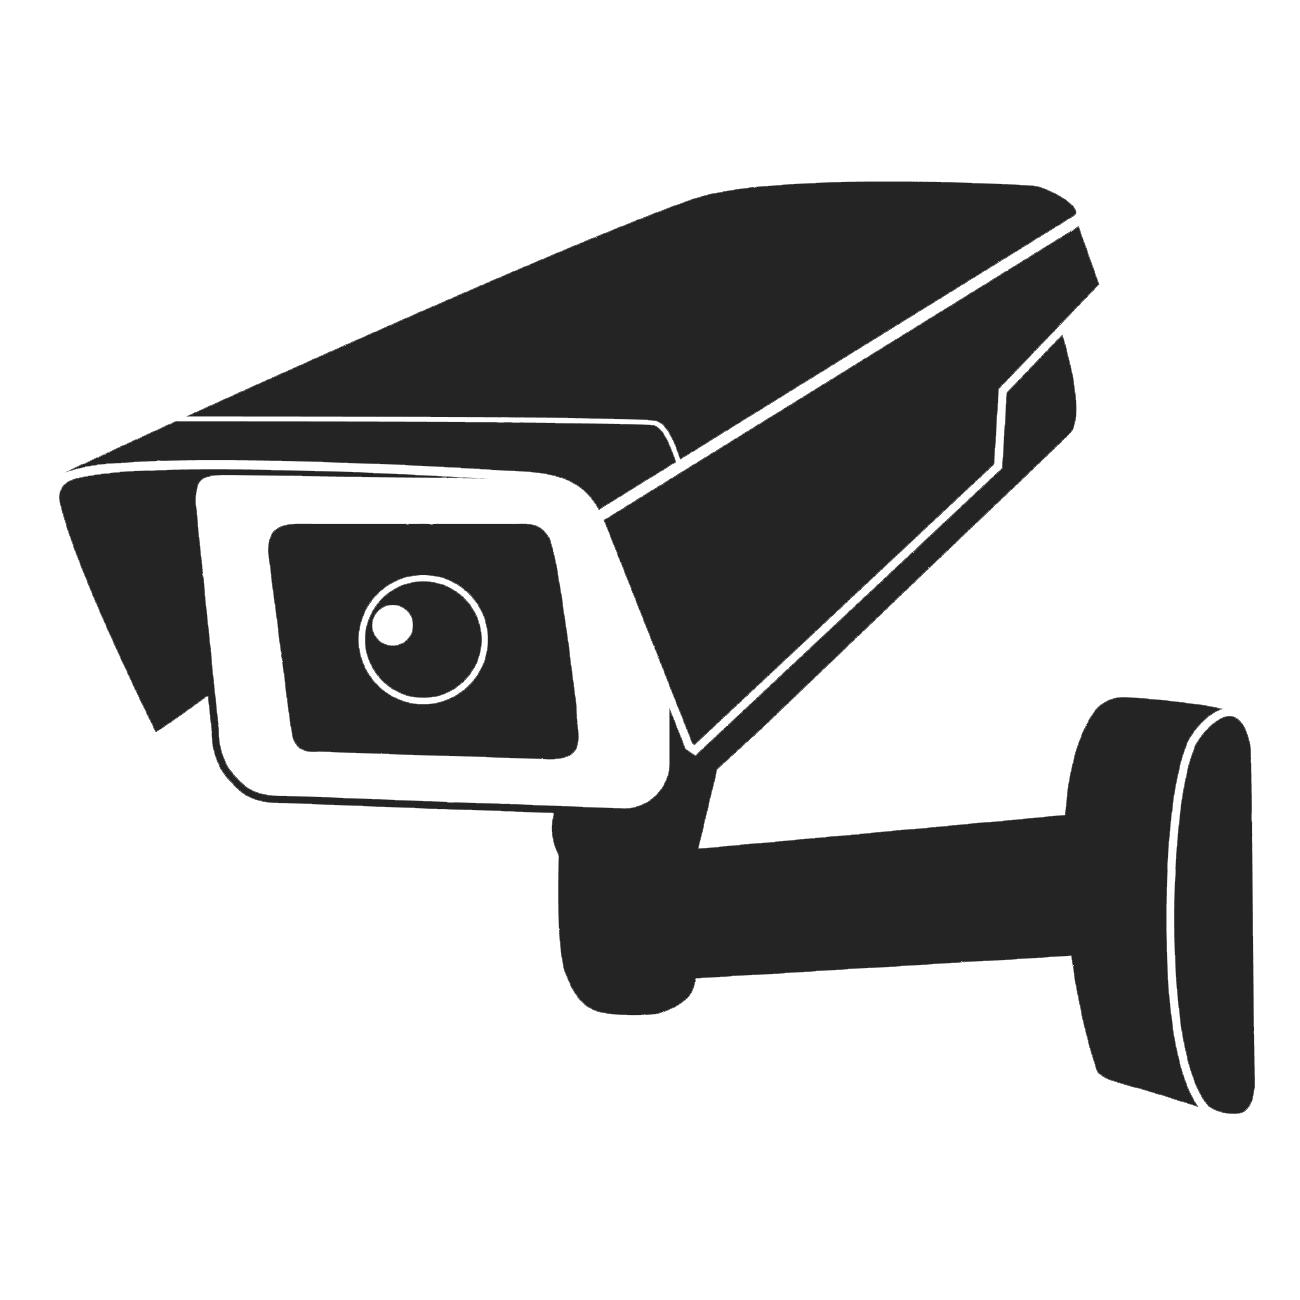 Closed-circuit television Surveillance Wireless security camera Clip ... freeuse download